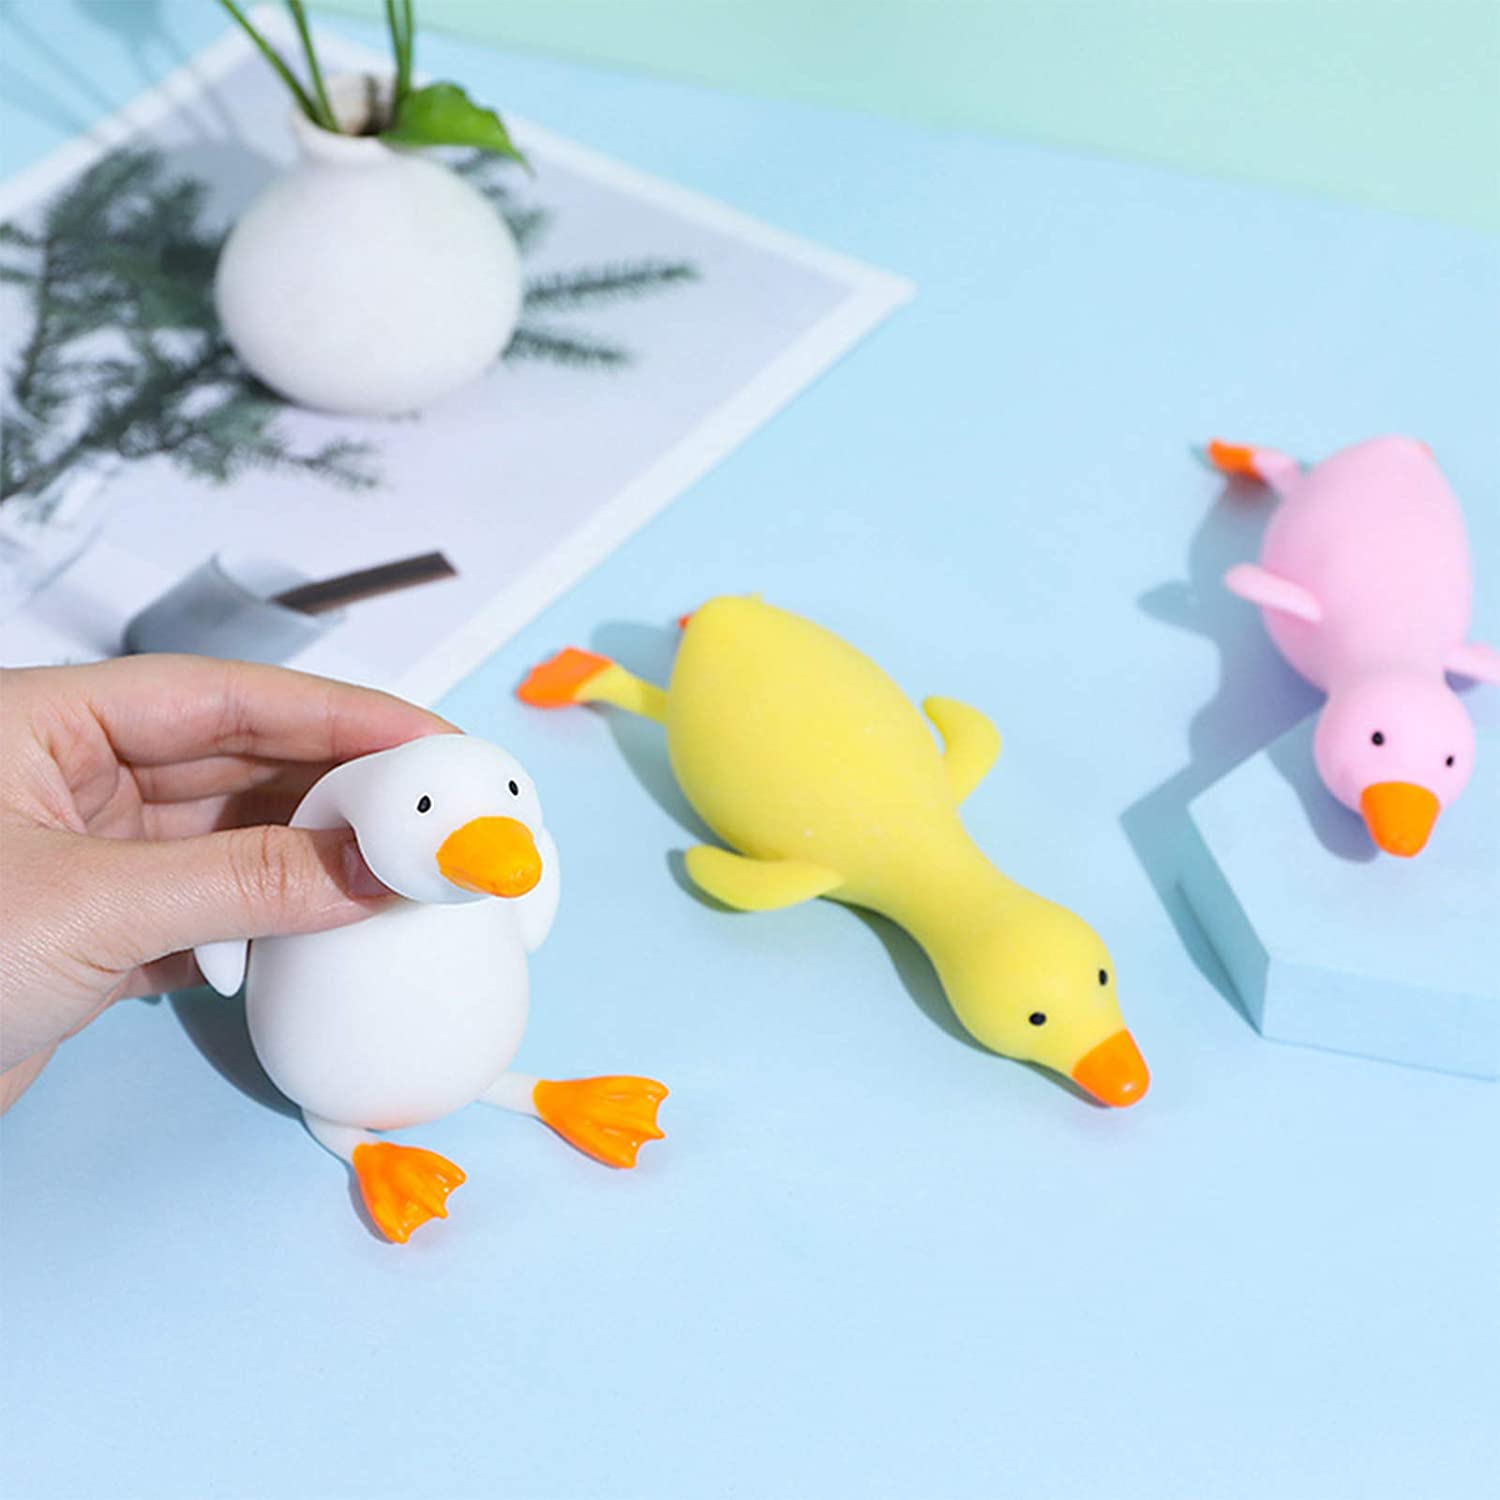 White BULINGNA Stress Relief Squishy Animal Toy Miniature Squeeze Pull Plastic Novelty Fidget Duck for Adults and Kids with Anxiety Autism